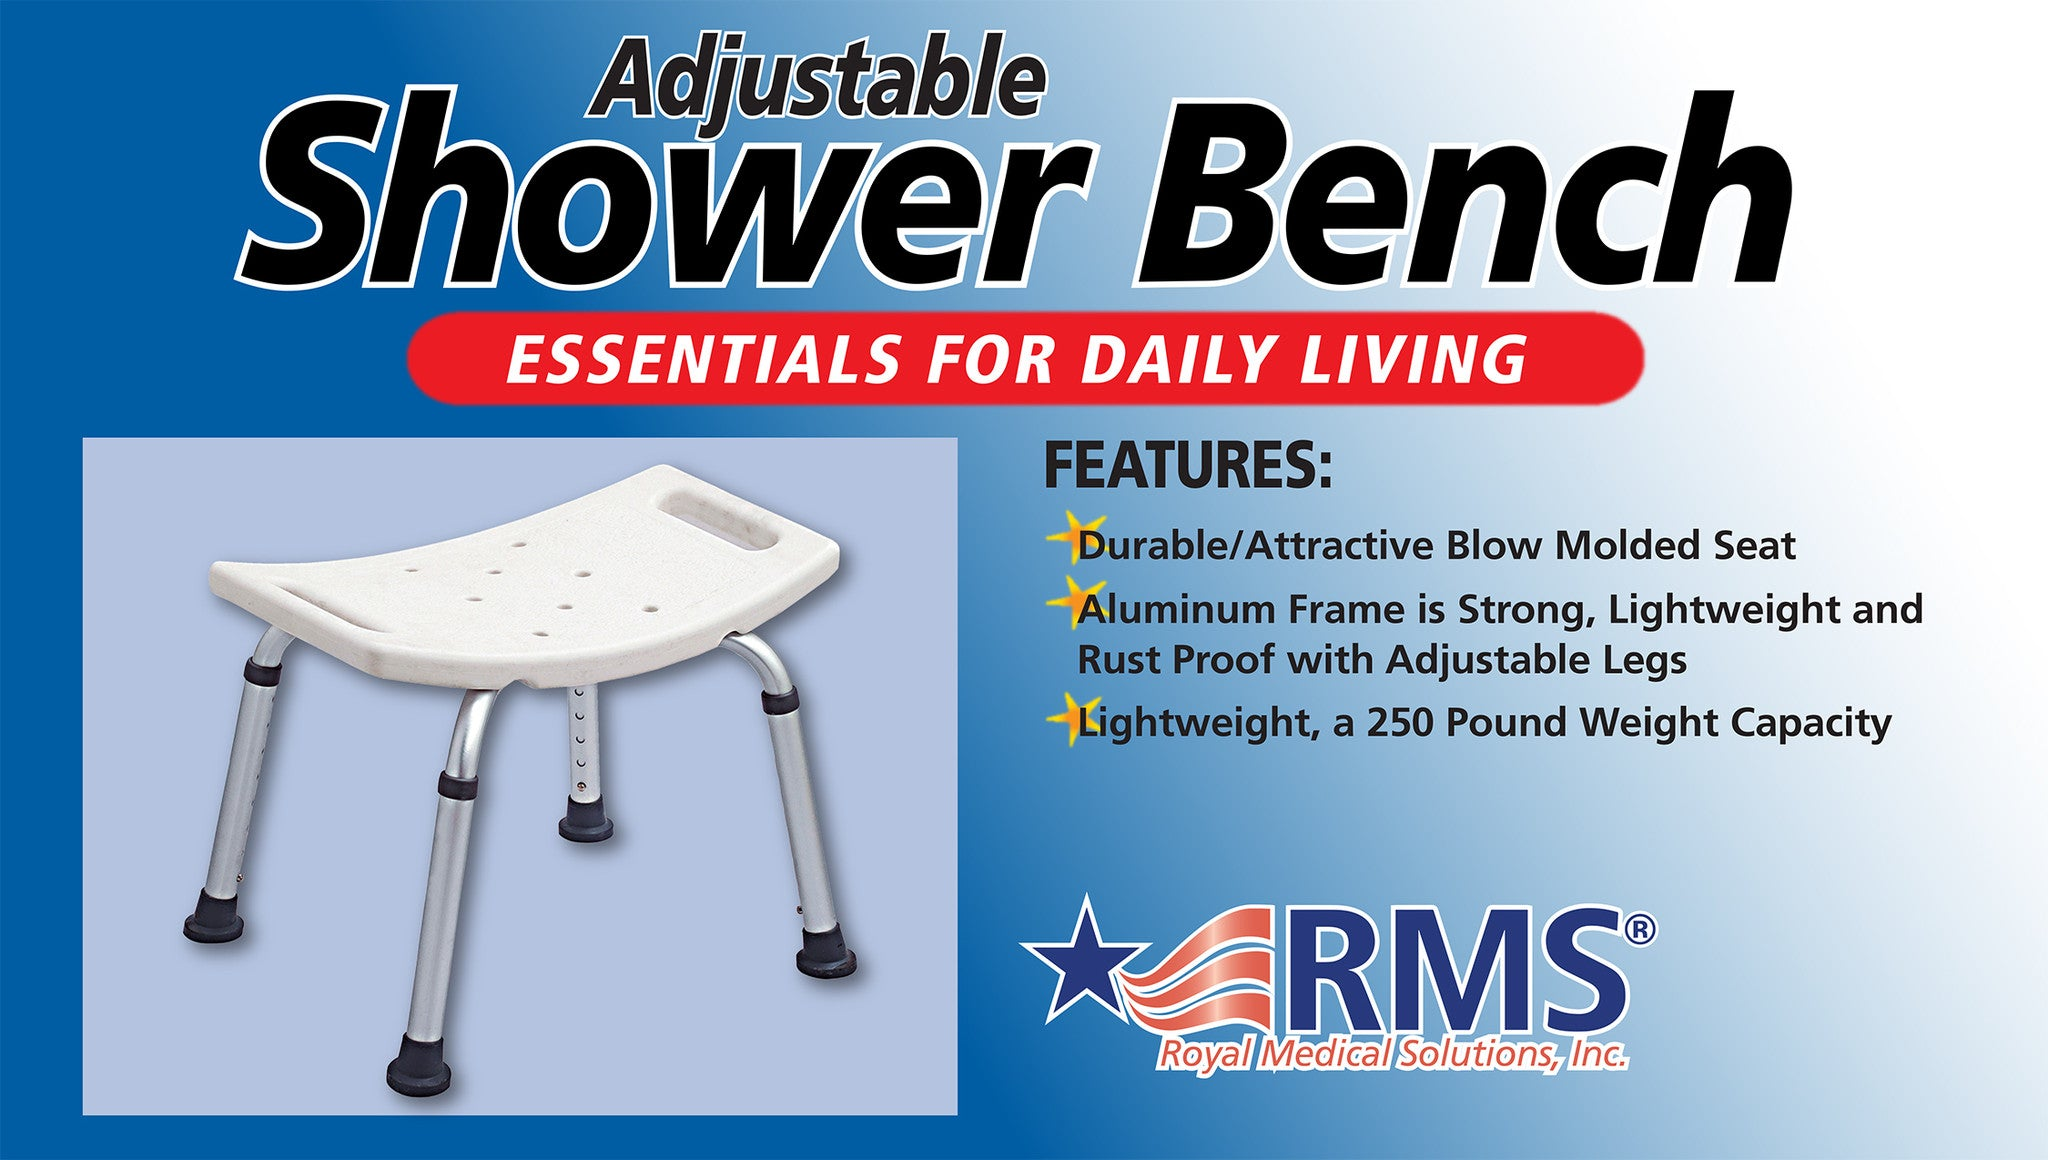 RMS Bath and Shower Bench – My RMS Store